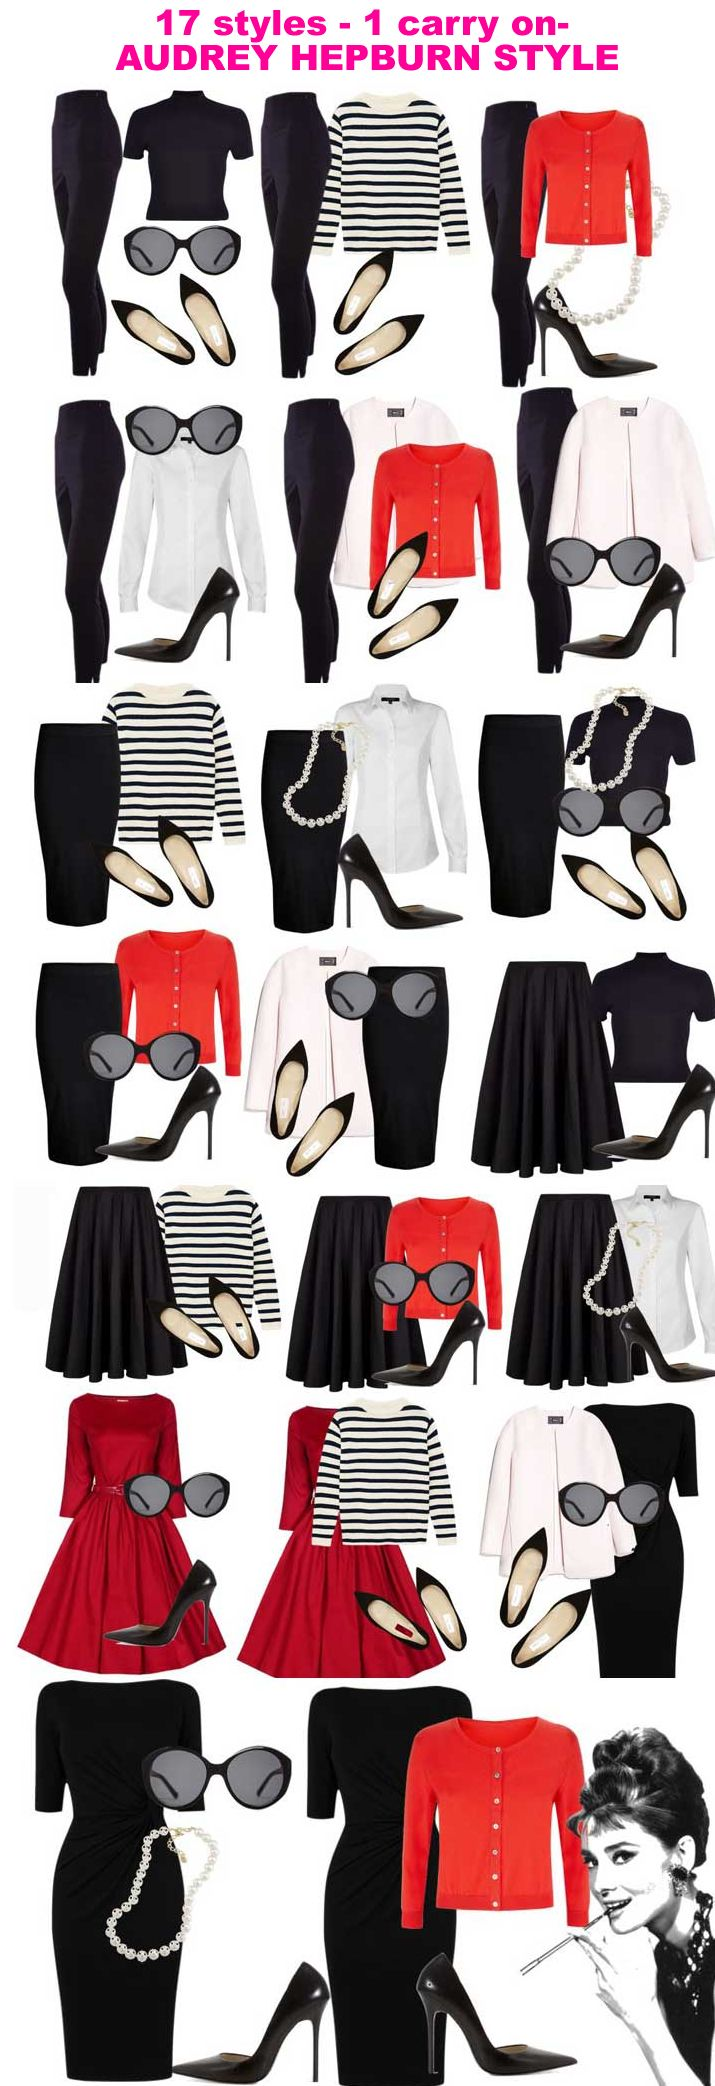 17 Styles With Only 10 Pieces It S Classic And Never Out Of Date Audrey Hepburn I Love Black And White Audrey Hepburn Style Outfits Fashion Capsule Fashion